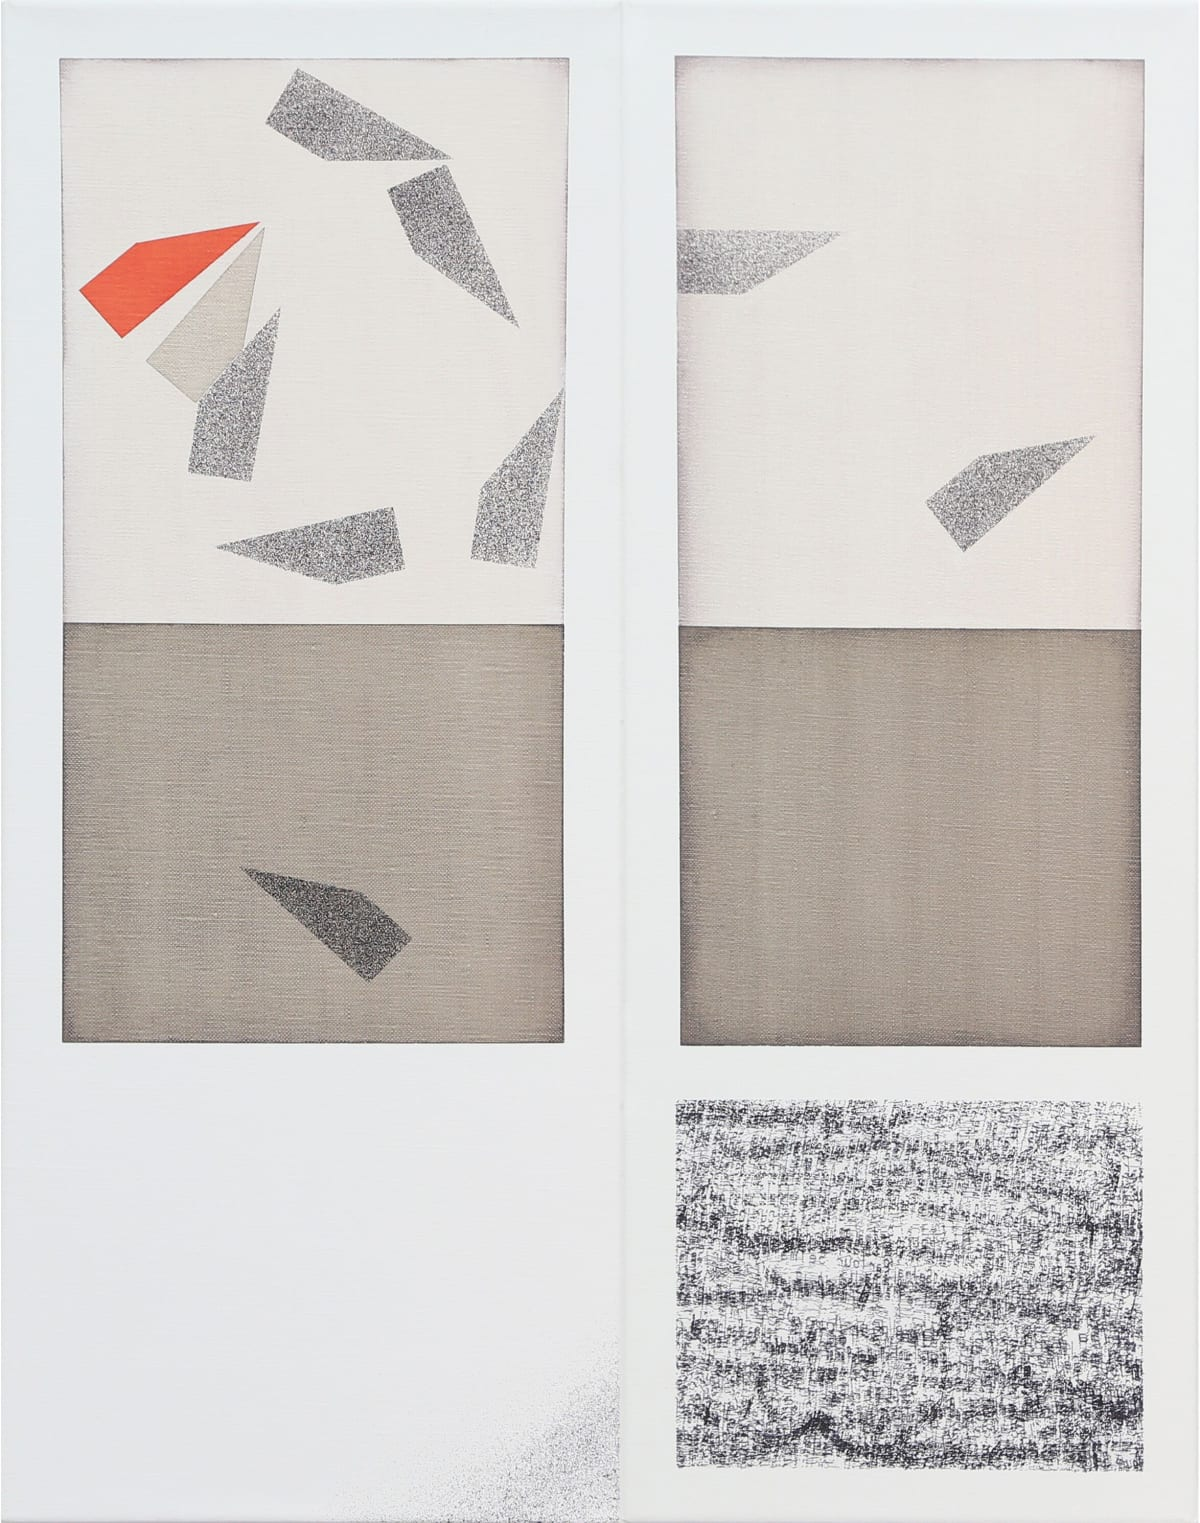 Selma Parlour 2019 Wedges, oil and ink from an industrial coding machine on linen, diptych, 51 x 20 cm (each panel)